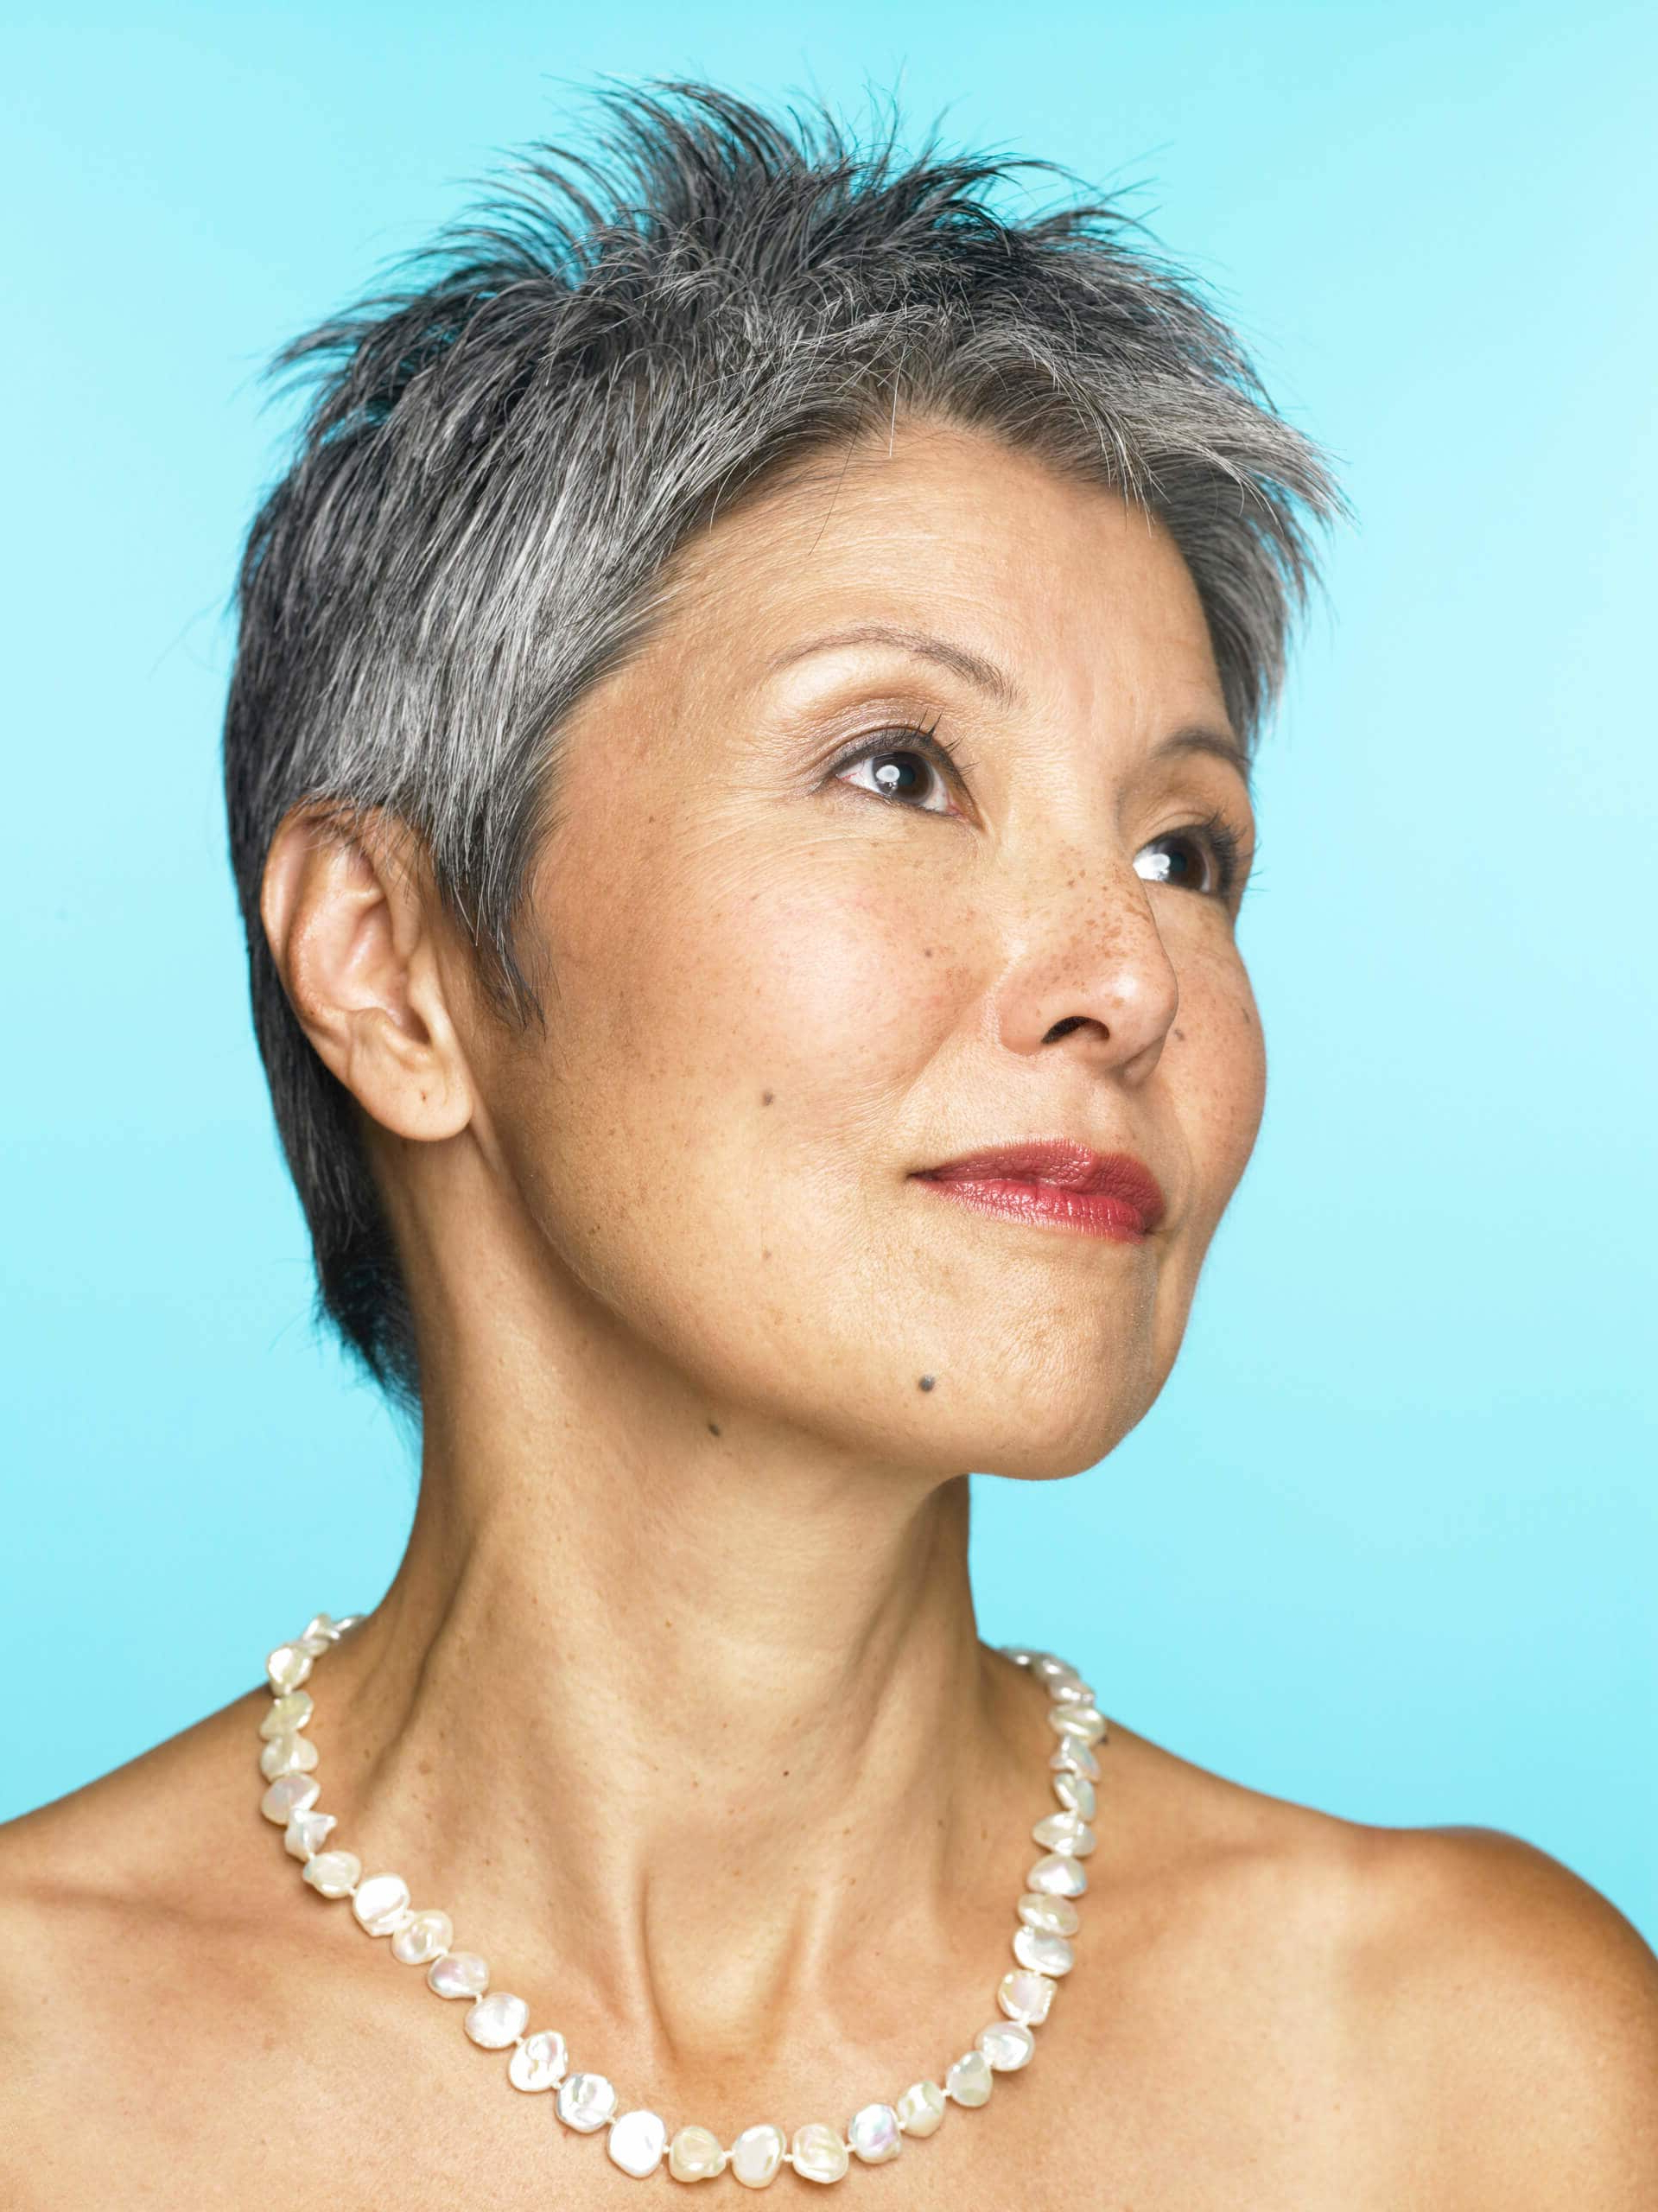 6 Chic And Classic Short Hairstyles For Older Women   All Things Hair Uk Regarding Short Hairstyles For Mature Woman (Gallery 24 of 25)